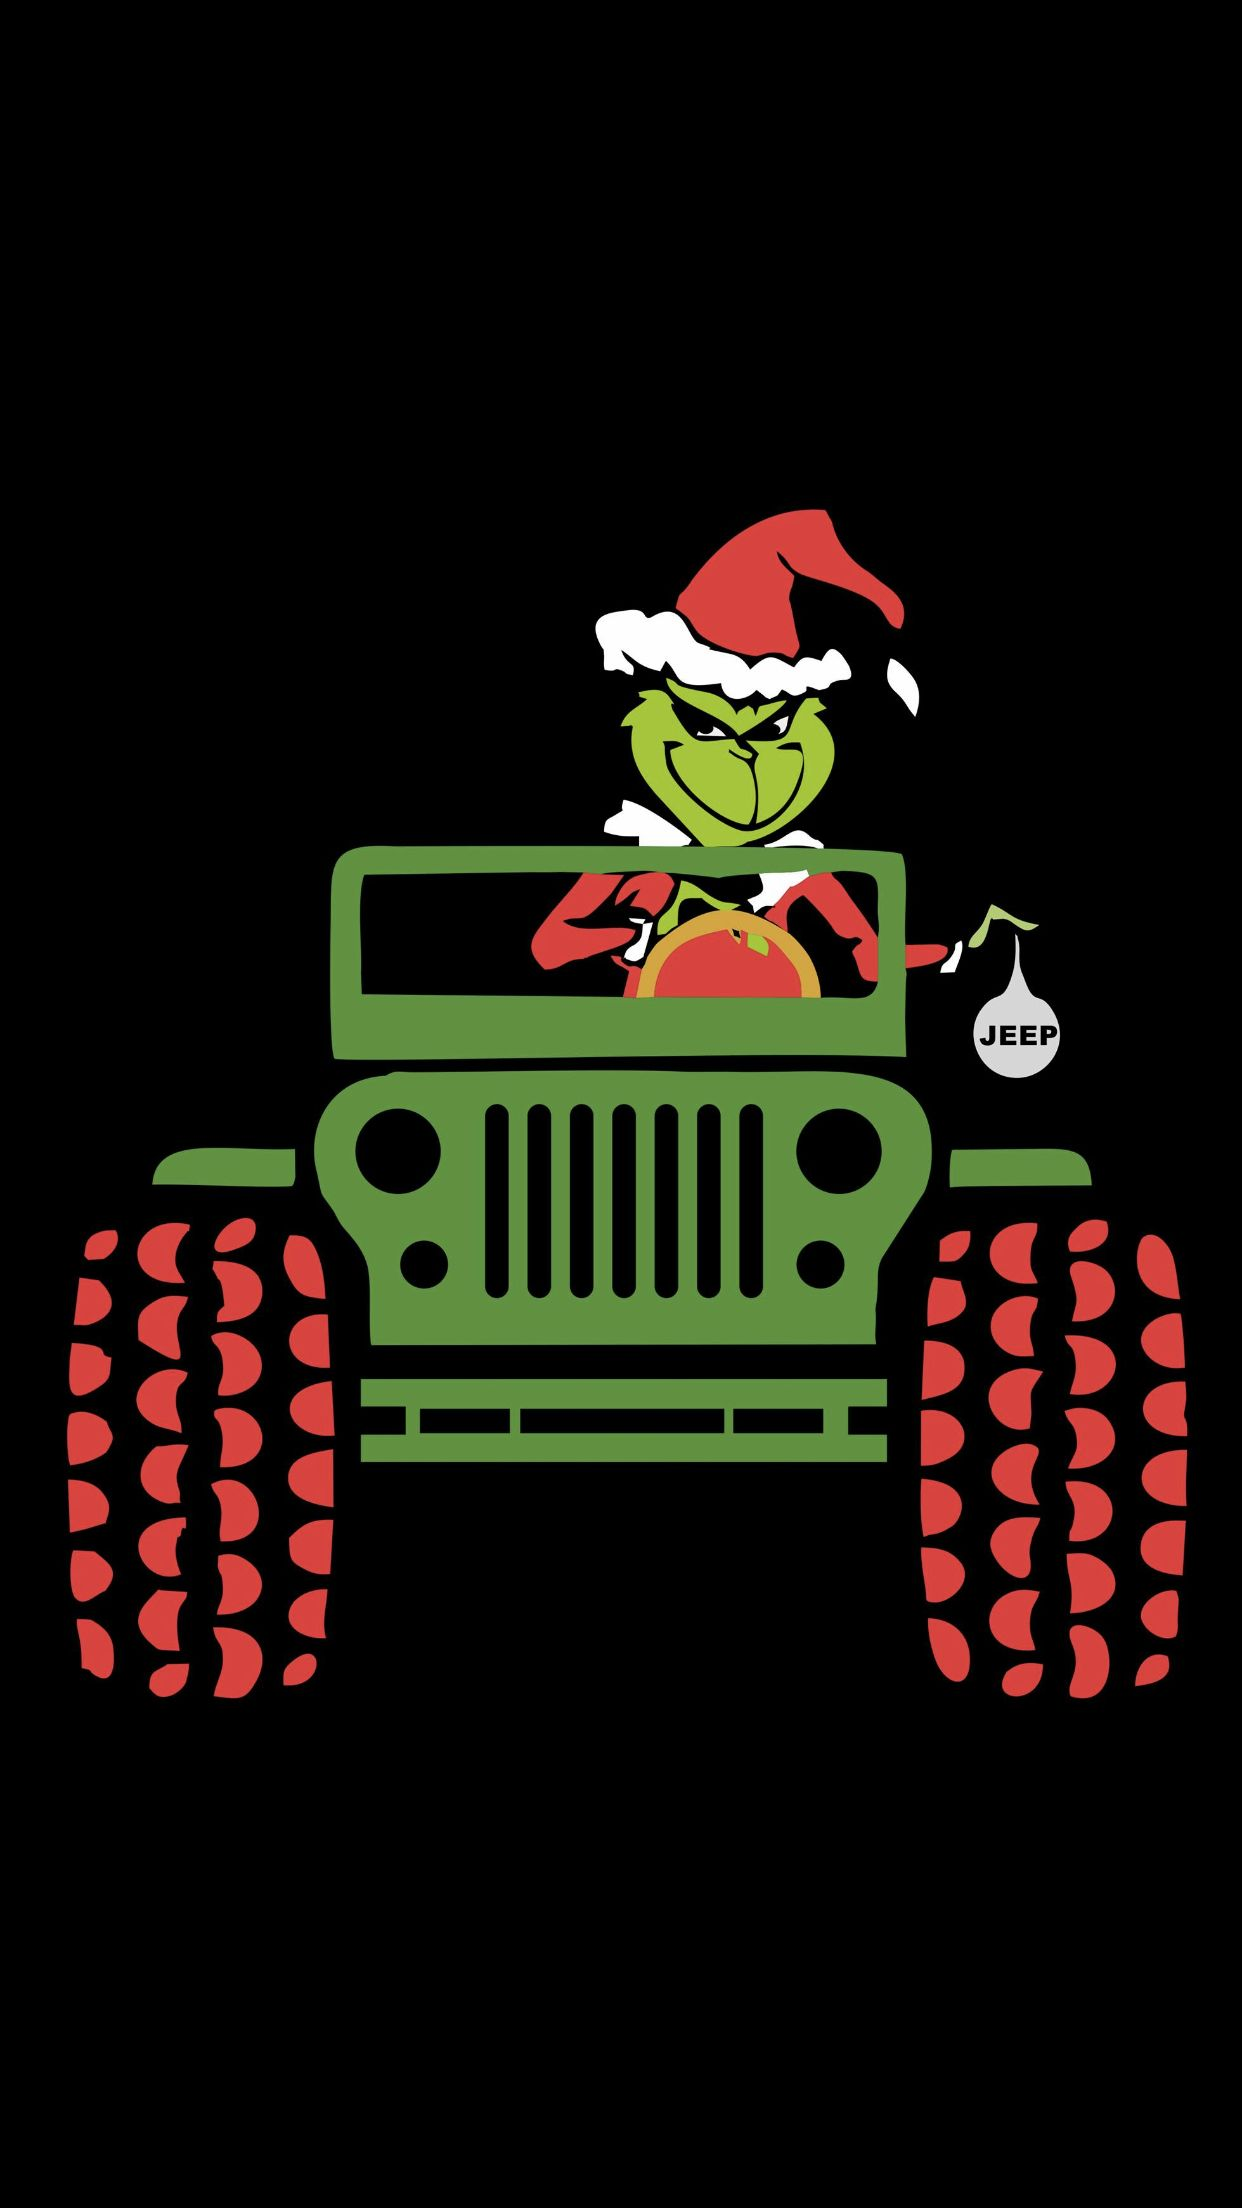 Pin by Sandie Drake on Cricut Mario characters, Jeep